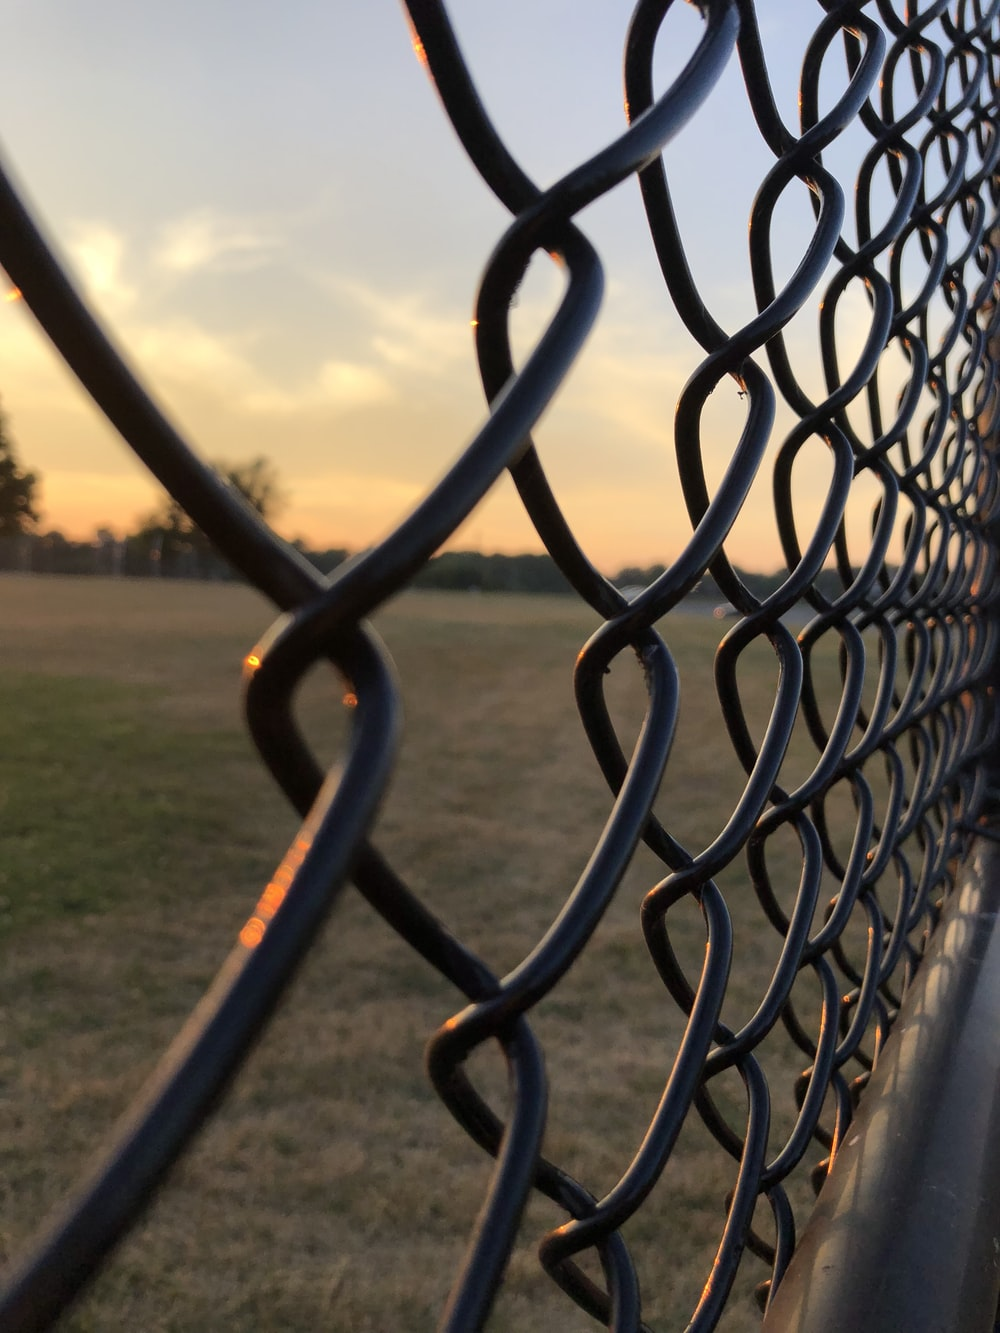 gray metal chain link fence viewing green round